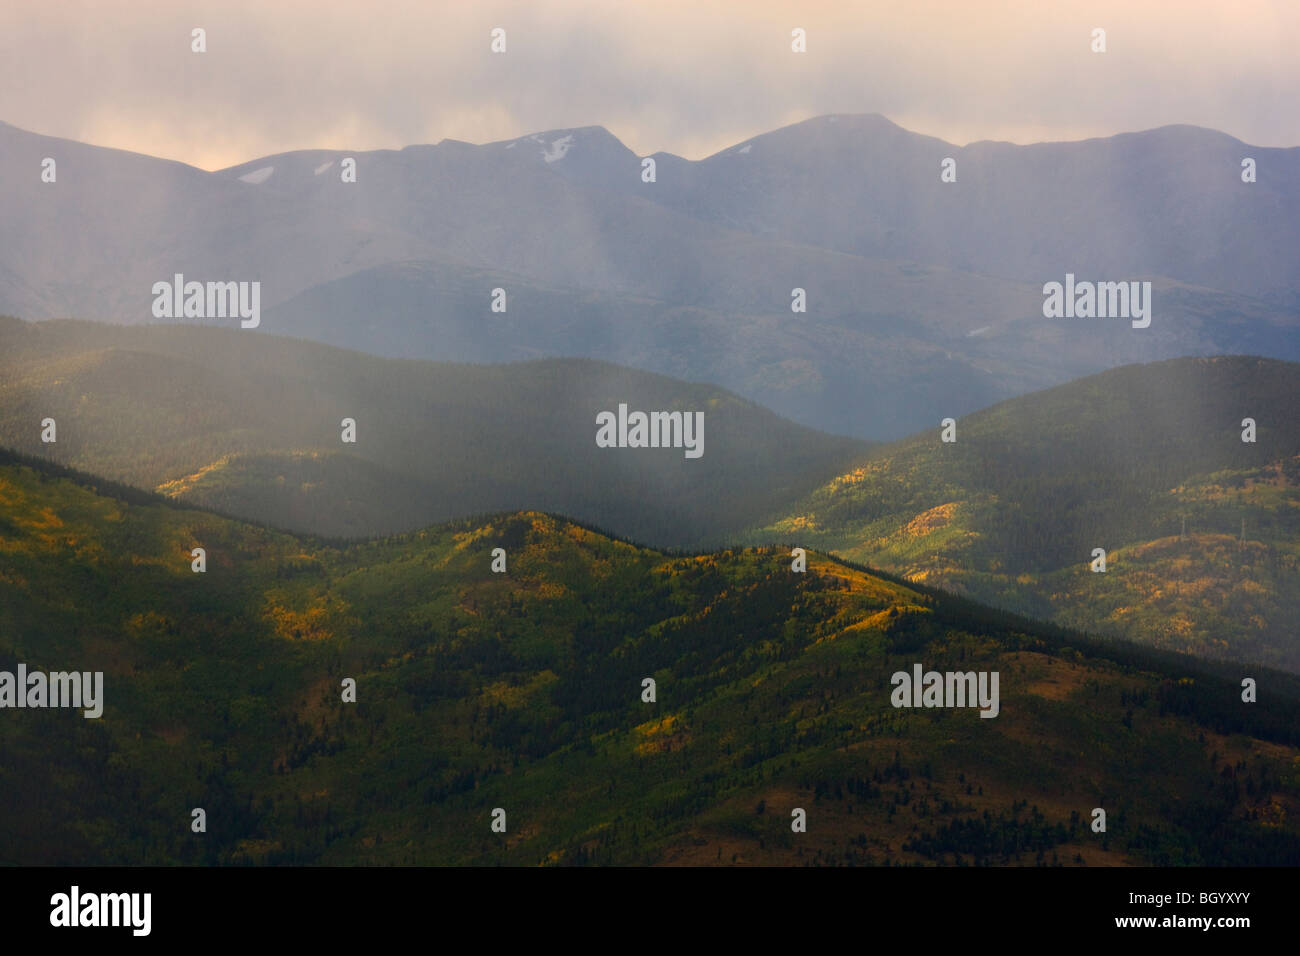 View of the Rocky Mountains from Mount Evans Recreation Area, Arapaho National Forest, Colorado. - Stock Image